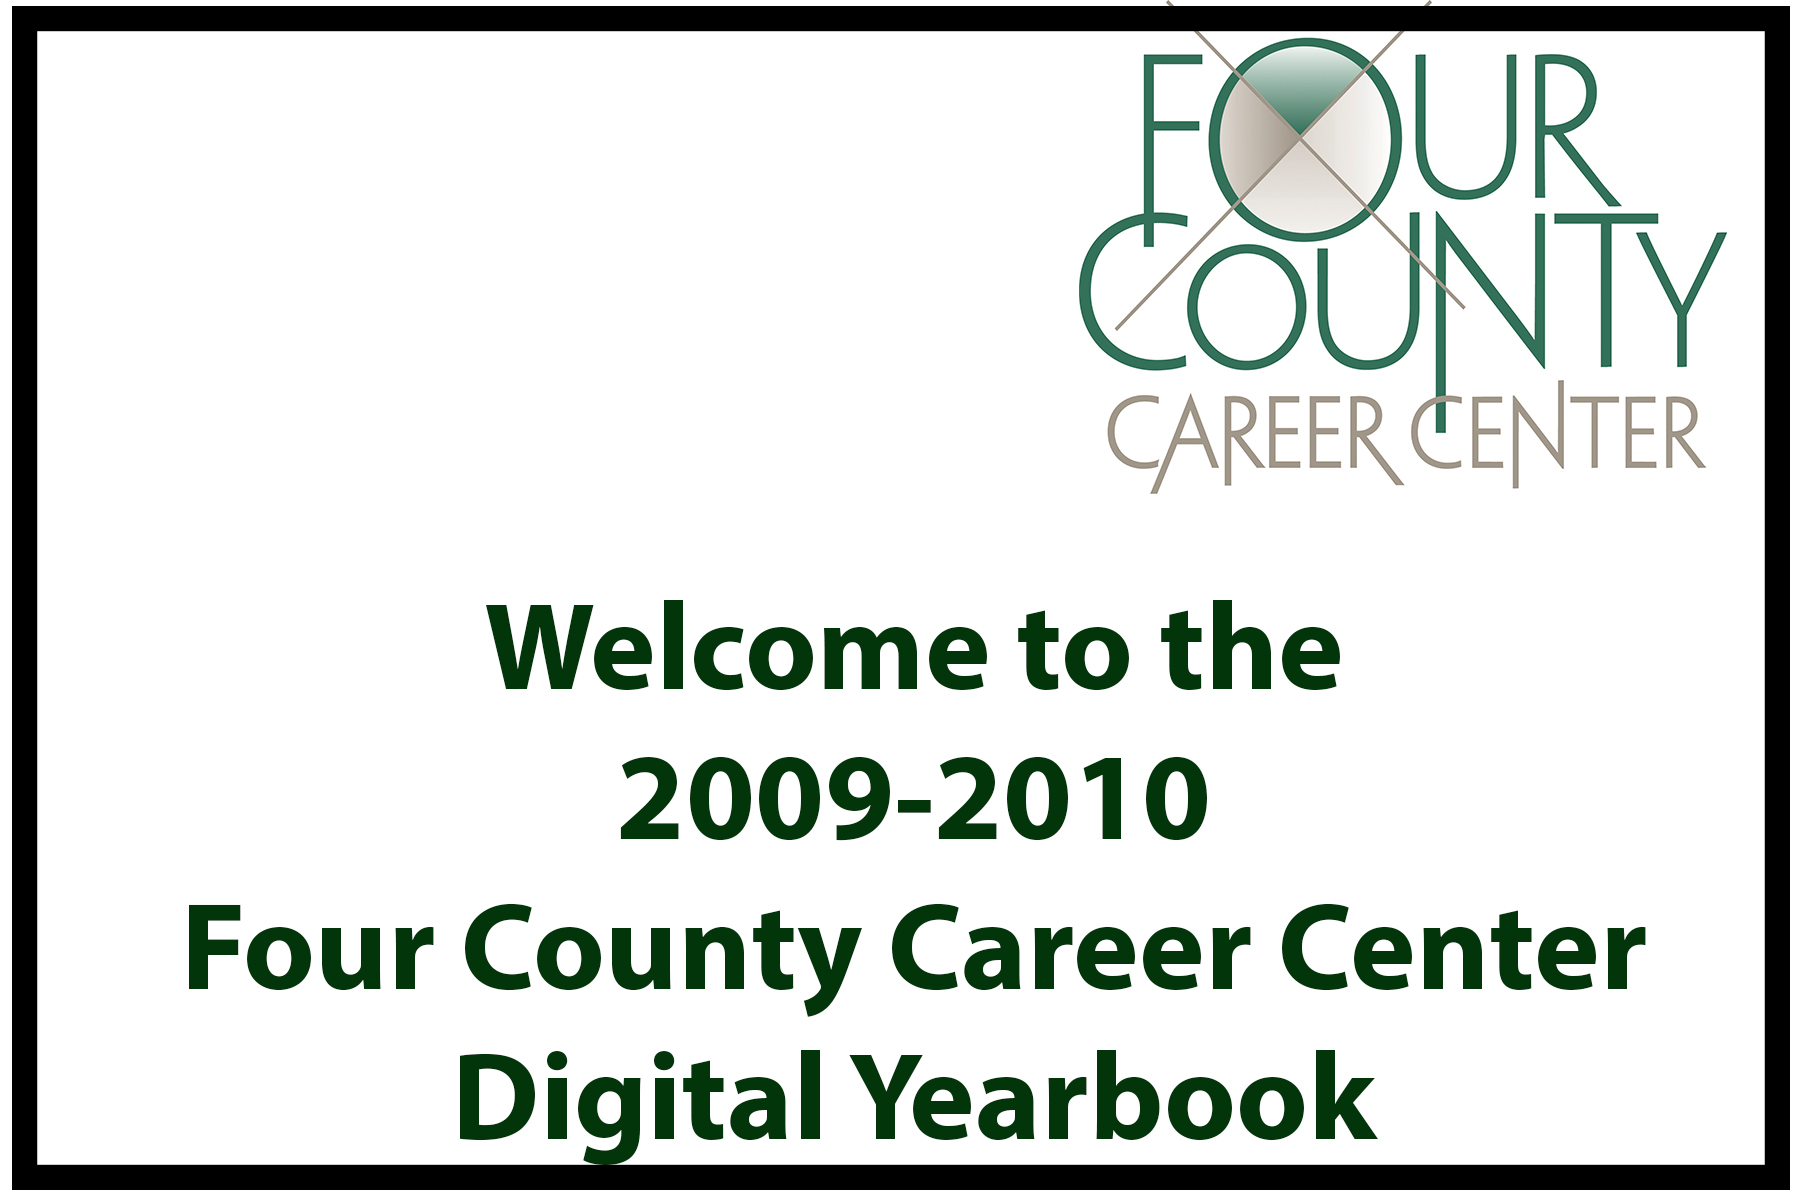 Image for: 2009-2010 Yearbook